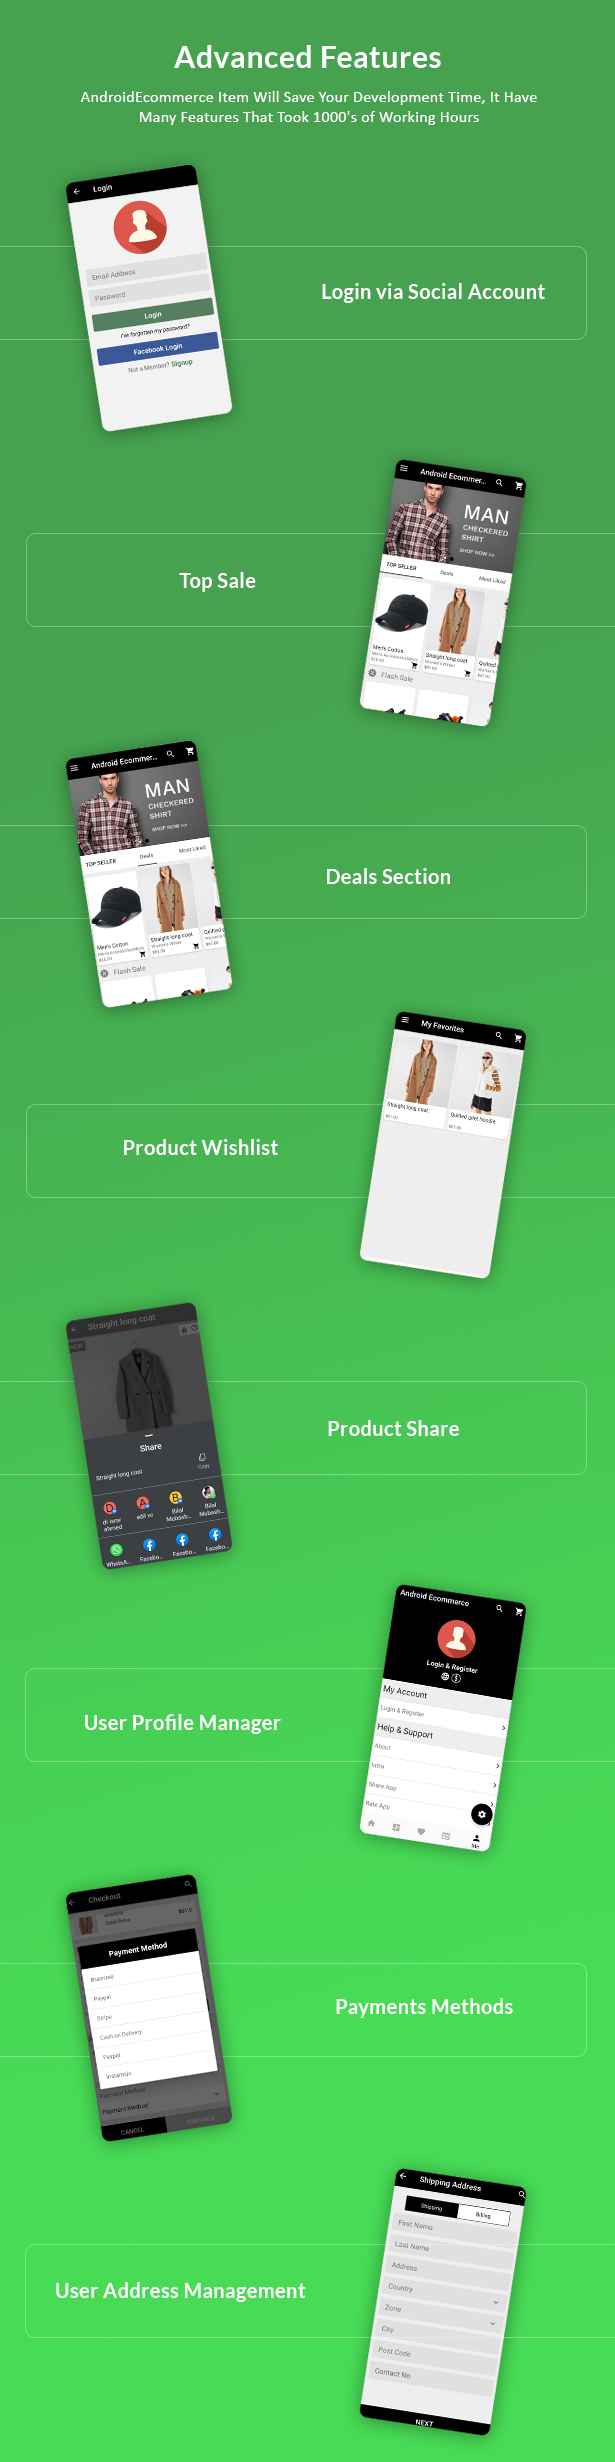 Android Ecommerce - Universal Android Ecommerce / Store Full Mobile App with Laravel CMS - 20